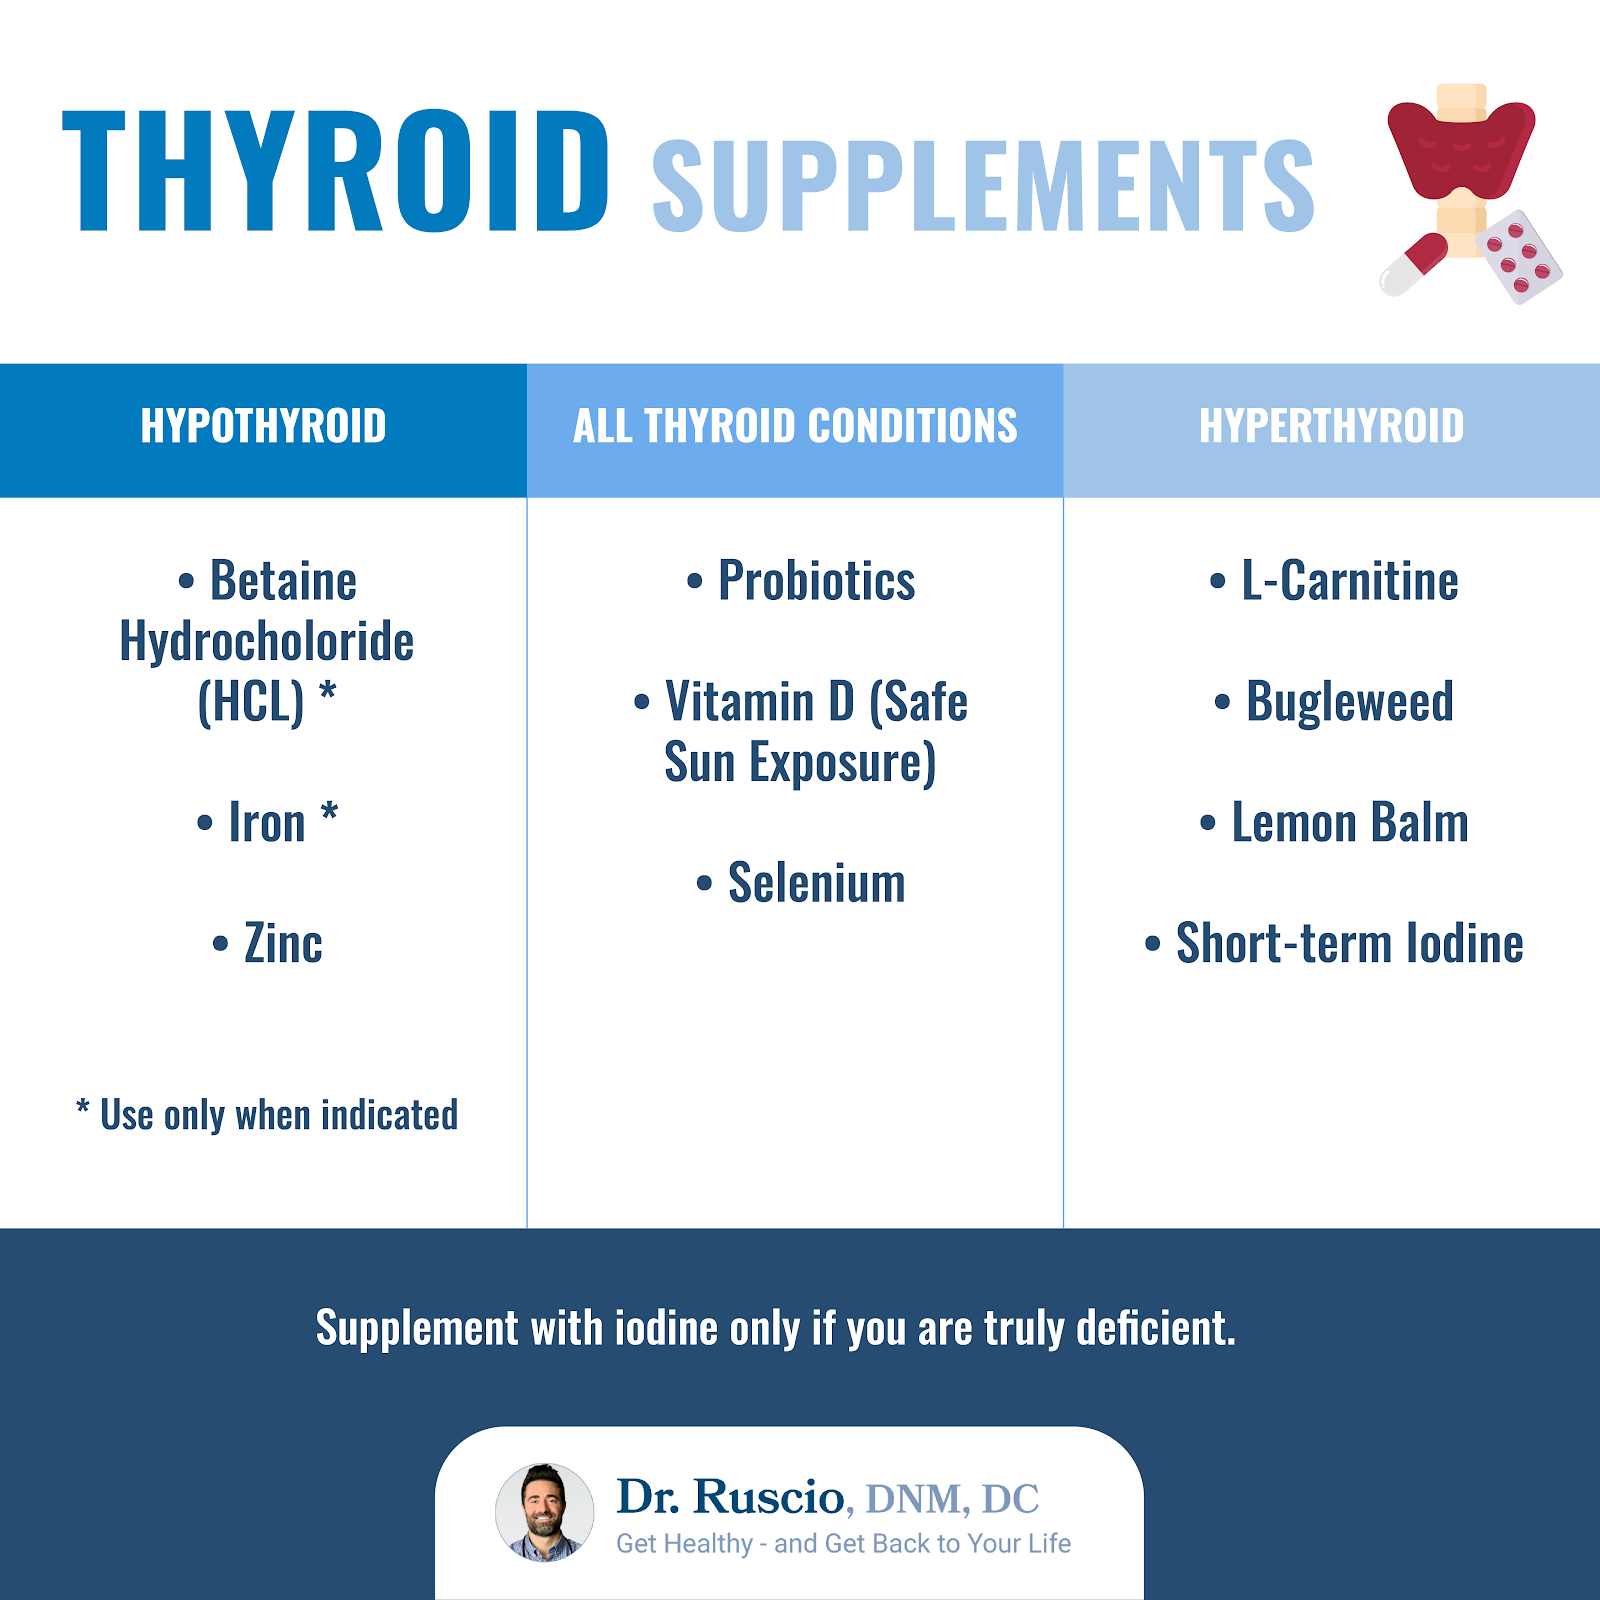 What does the thyroid do: An infographic showing thyroid supplements for different thyroid conditions